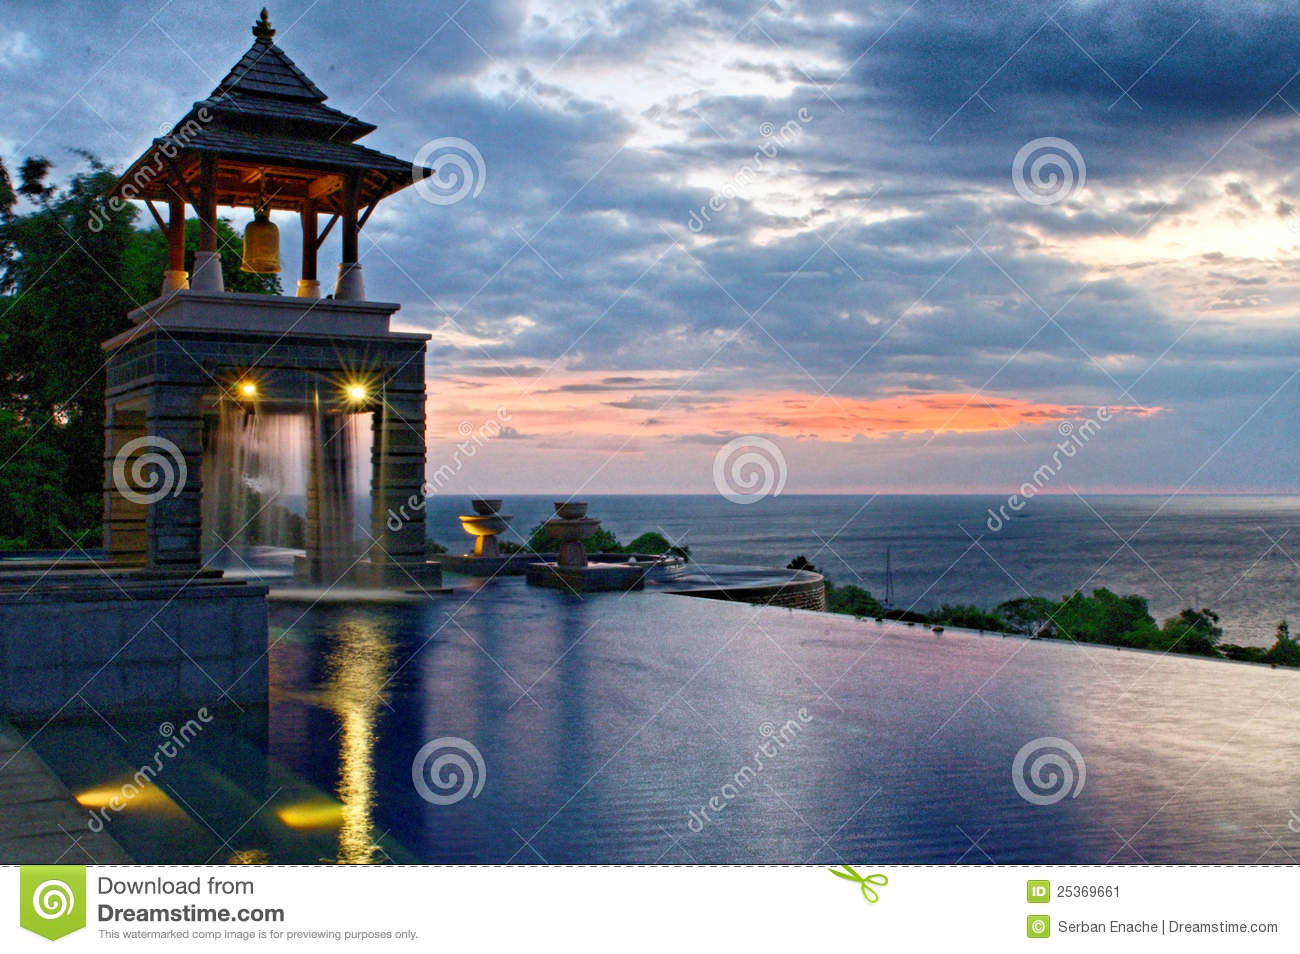 Download Infinity pool at sunset stock image. Image of lanta, lights - 25369661